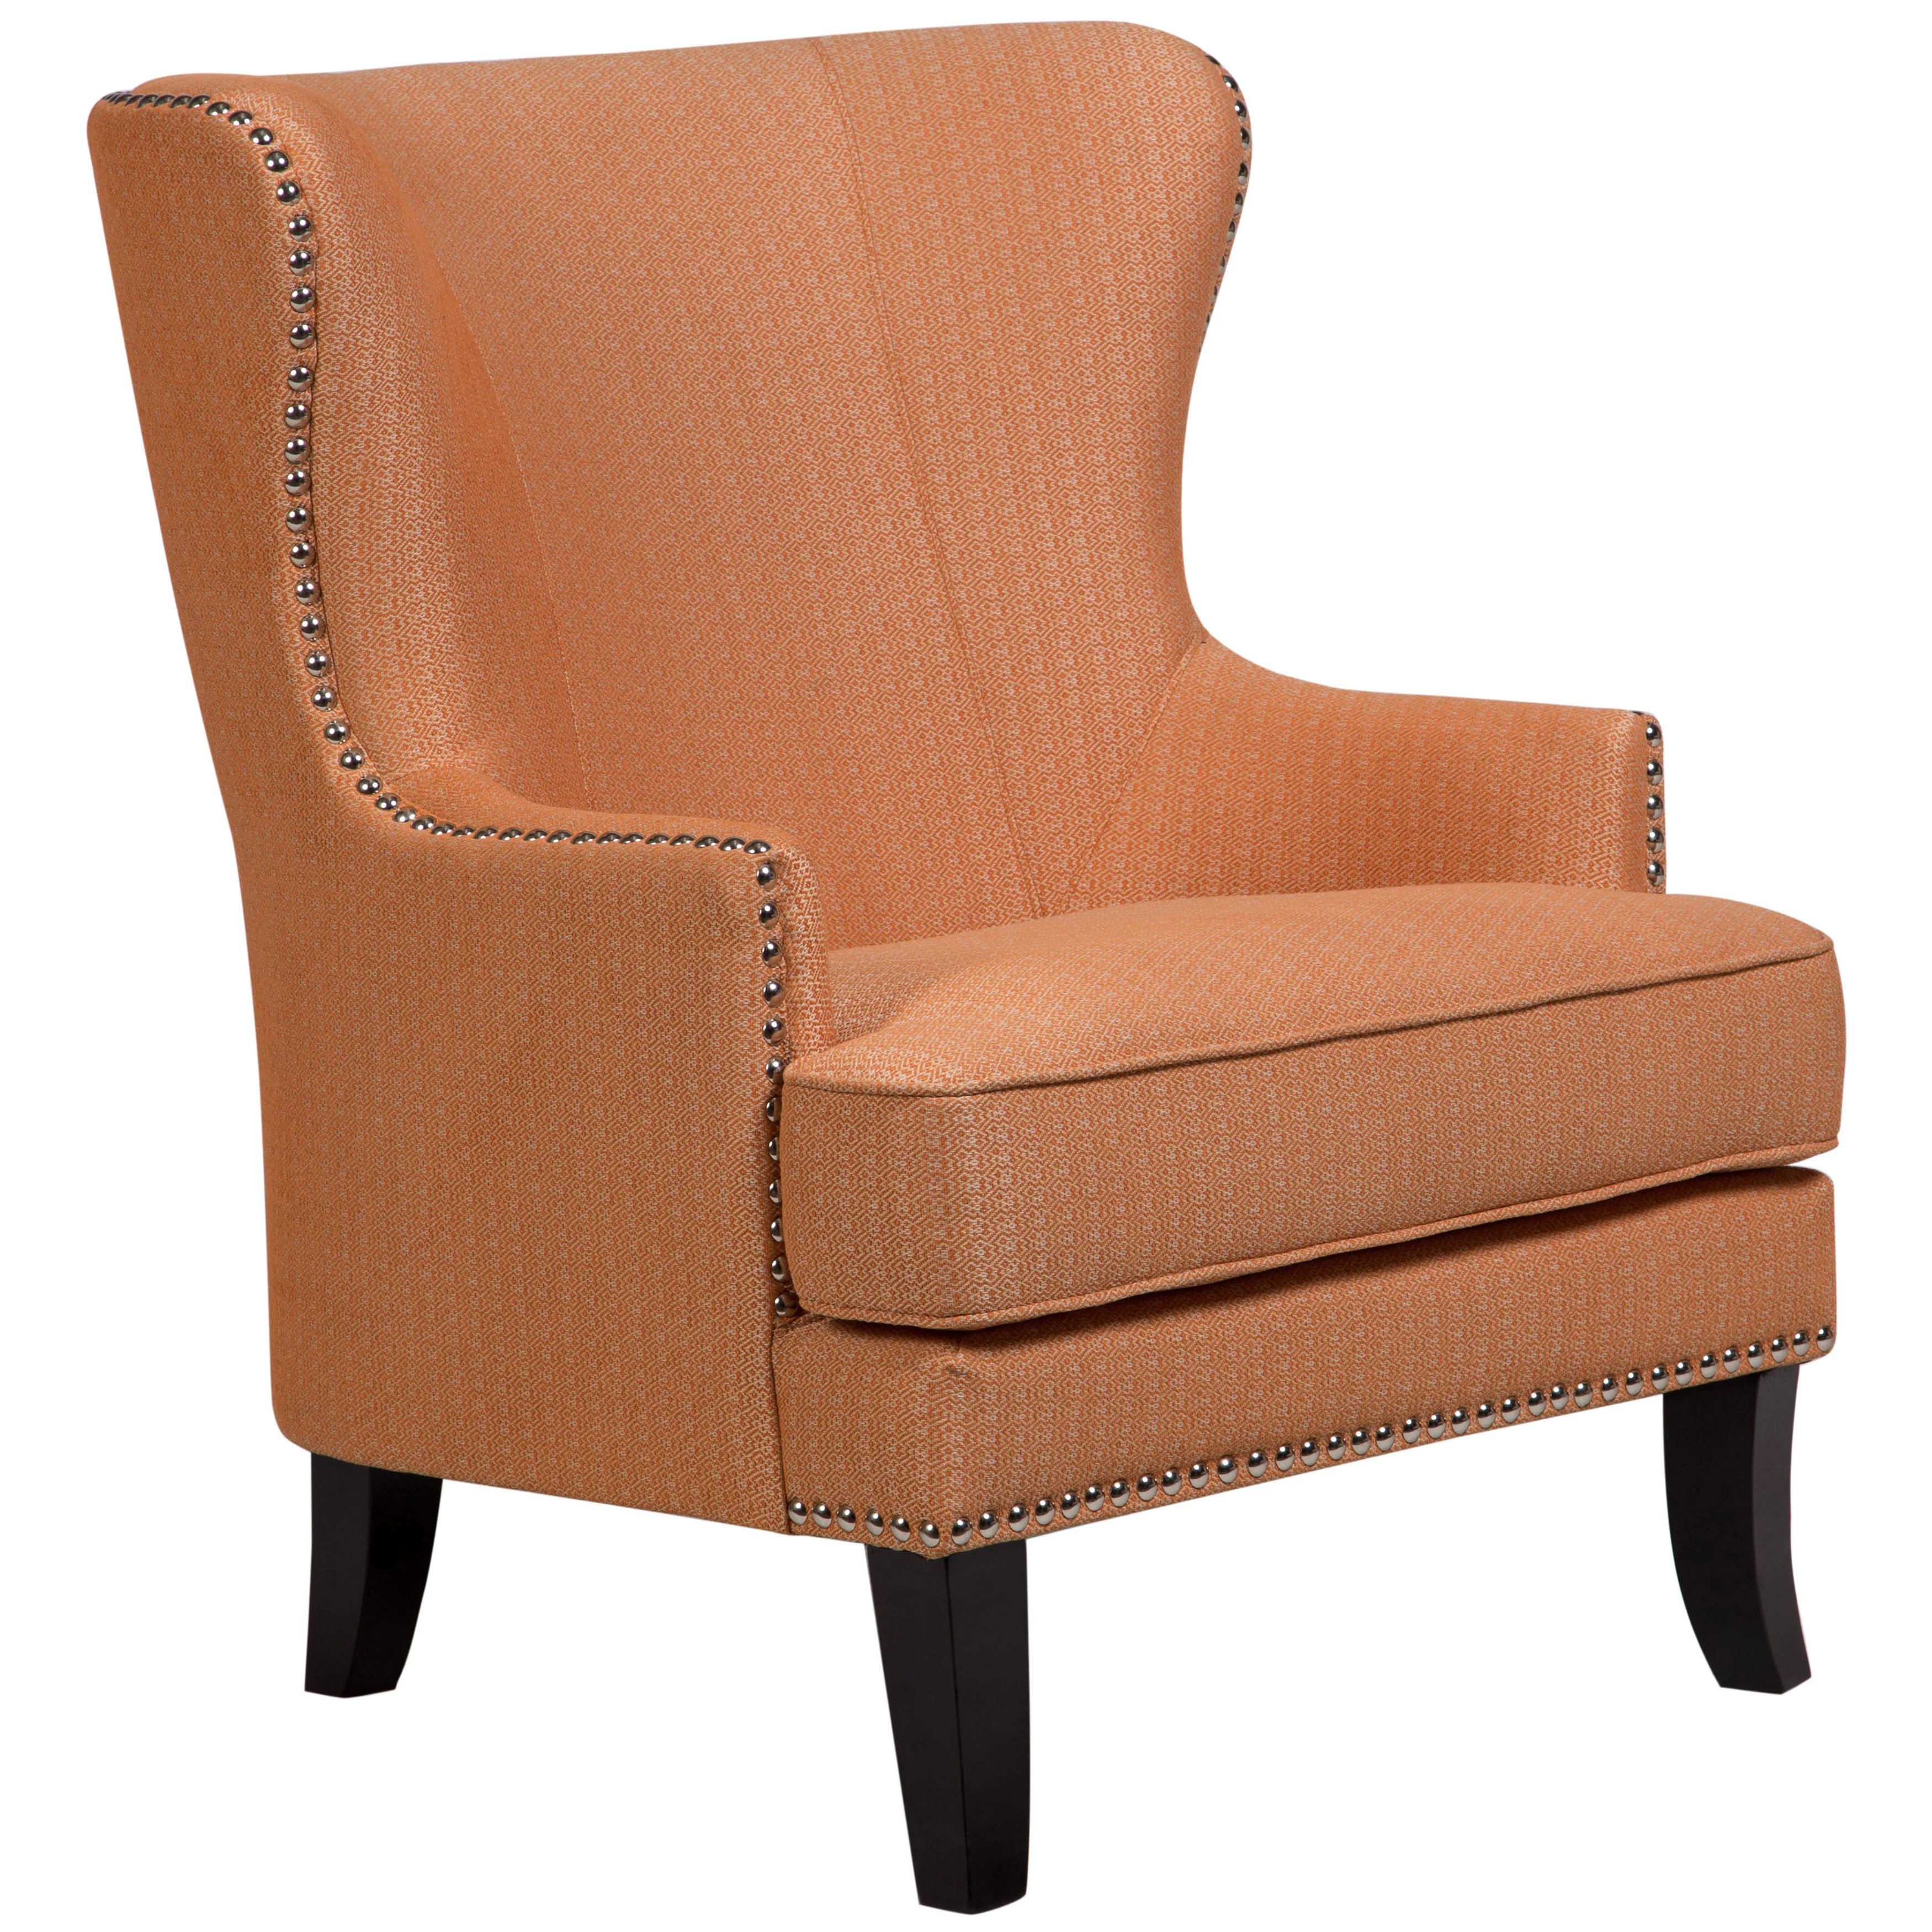 Beautiful Accent Chairs Porter Grant Orange Sunburst Wingback Accent Chair With Silver Nailhead 39